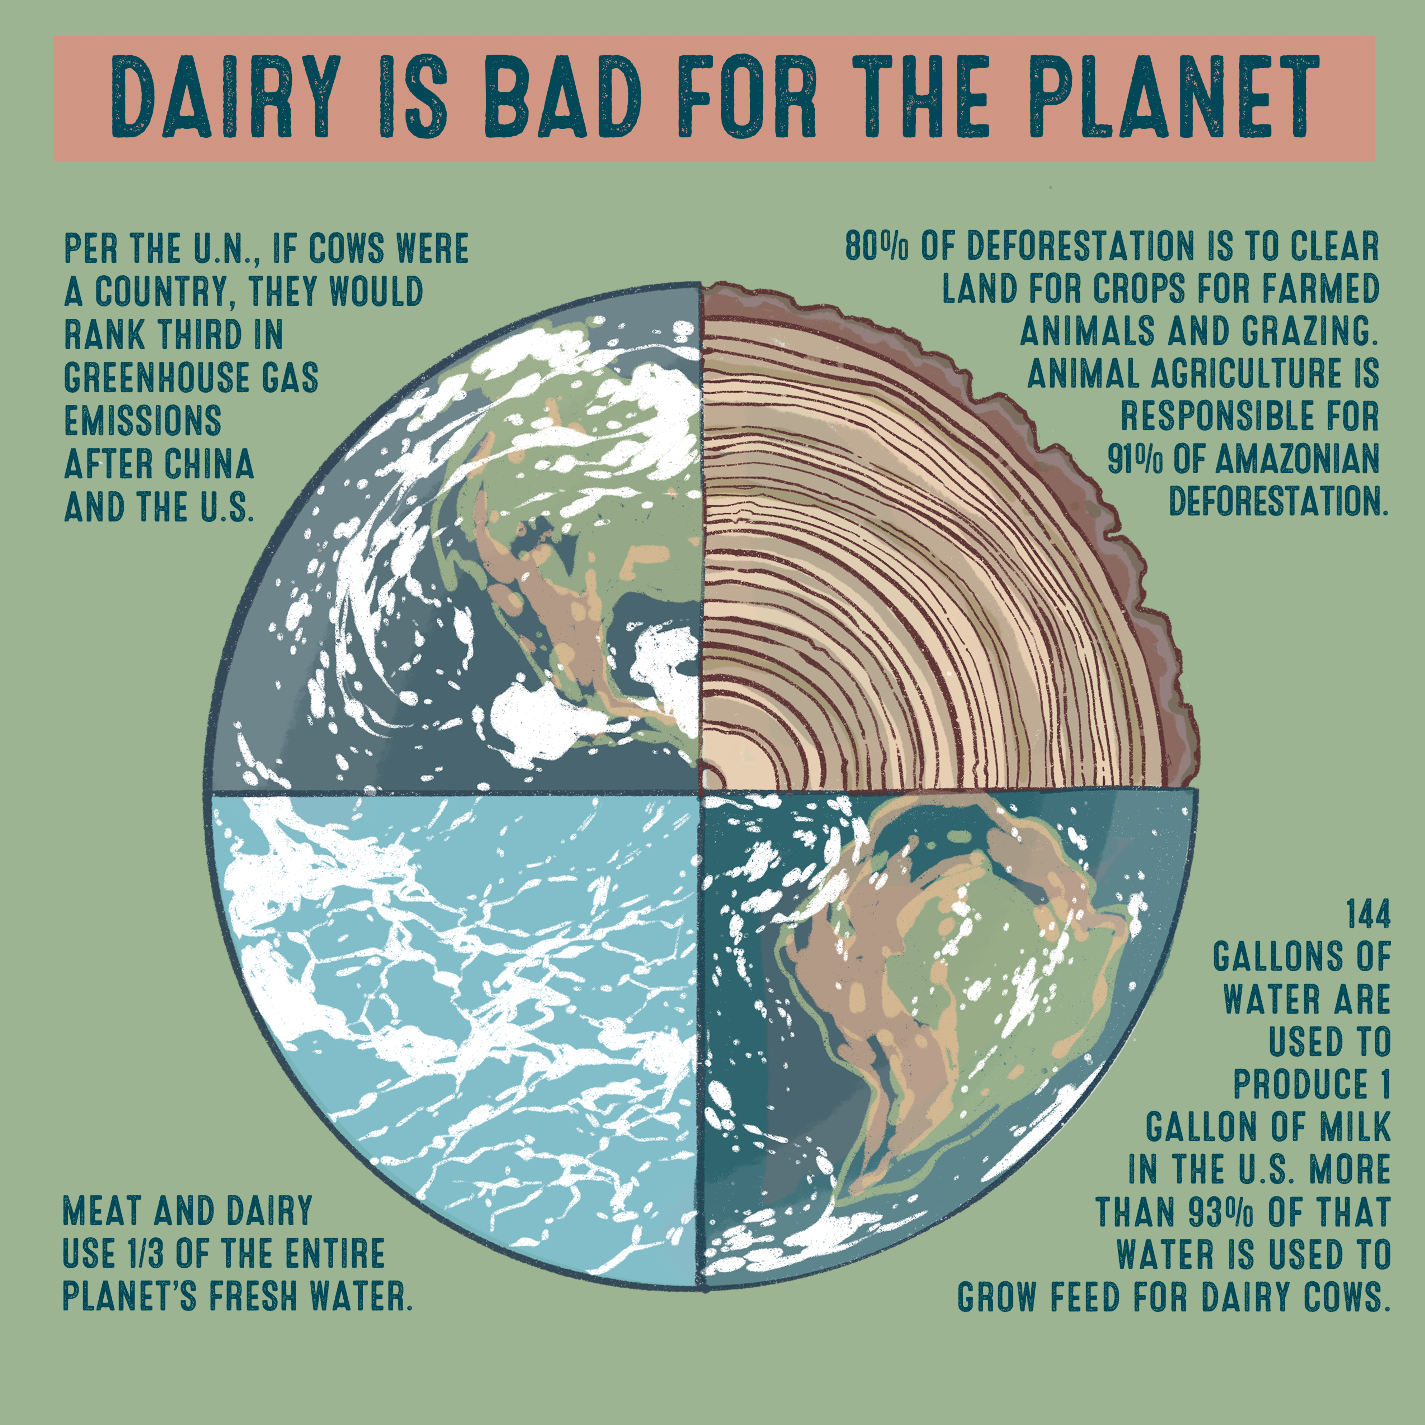 Dairy is bad for the planet  Per the U.N., if cows were a country, they would rank third in greenhouse gas emissions after China and the U.S. 80% of land deforestation is to clear land for crops for farmed animals and grazing. Animal agriculture is responsible for 91% of Amazonian deforestation.  Meat and dairy use 1/3 of the entire planet's fresh water. 144 gallons of water is used to produce 1 gallon of milk in the U.S. more than 93% of that water is used to grow feed for dairy cow